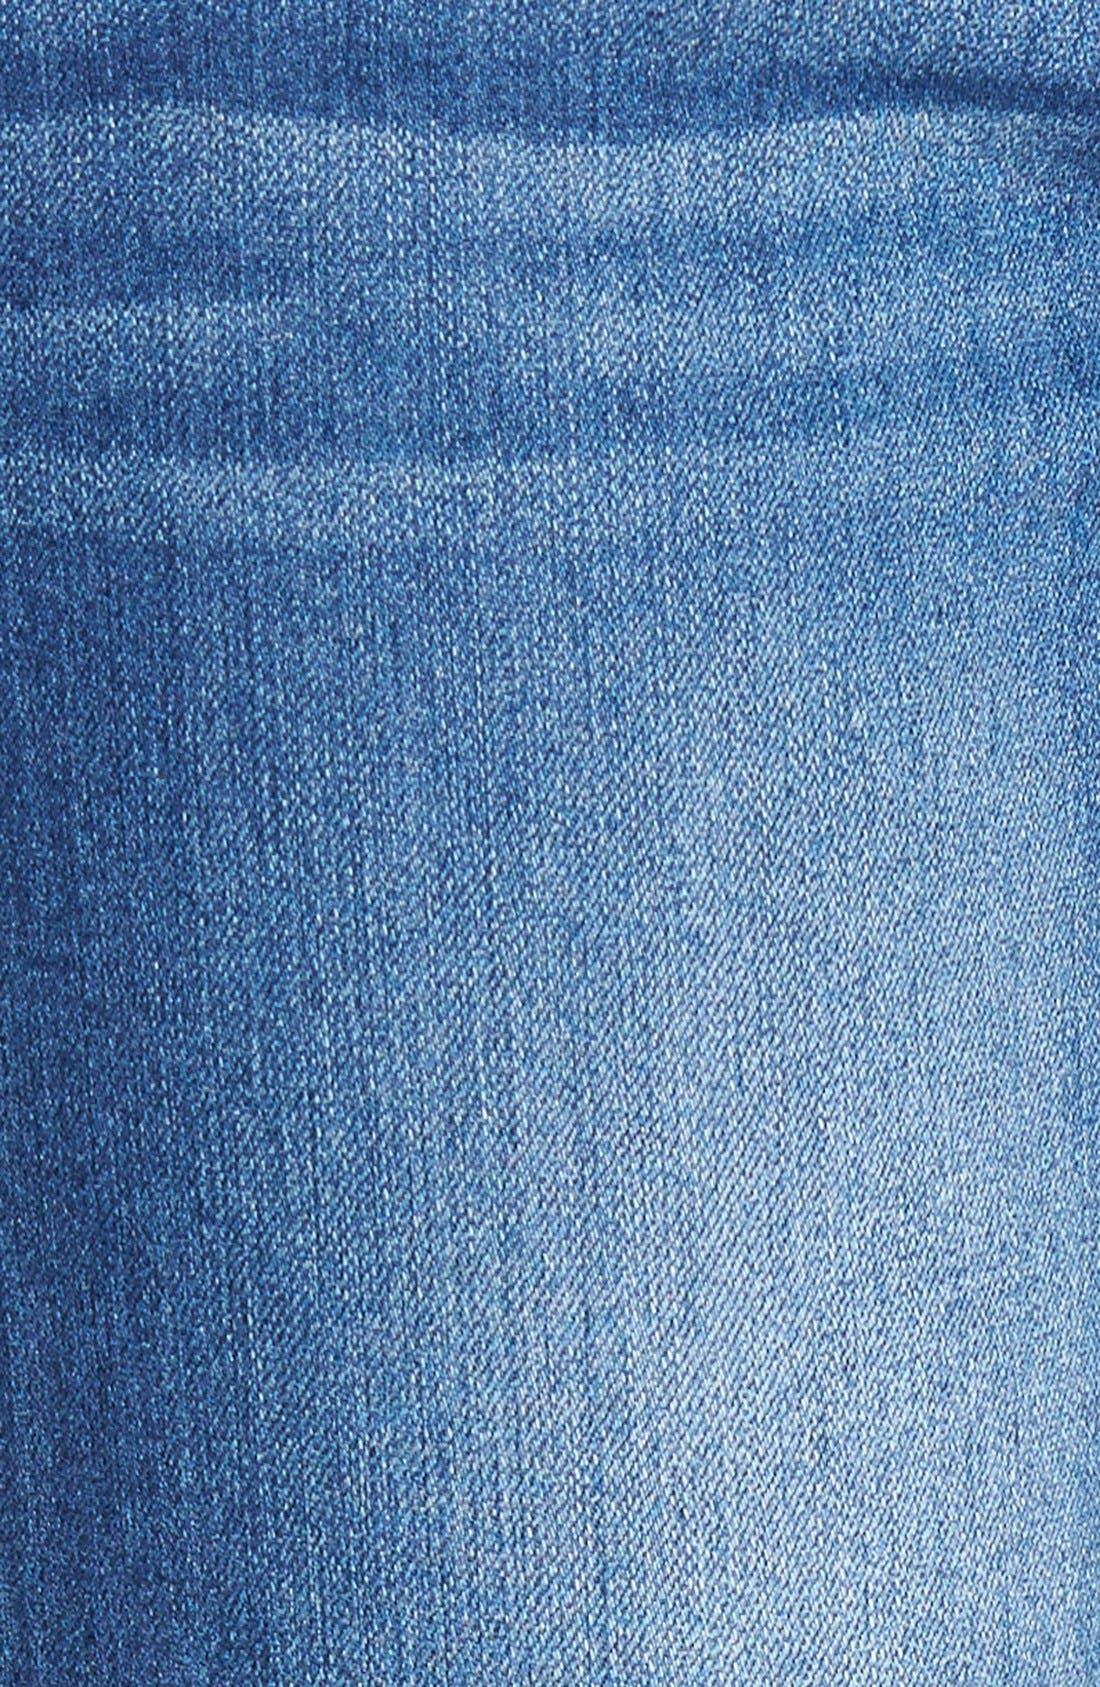 Alternate Image 5  - Wit & Wisdom 'Ab-solution' Booty Lift Stretch Skinny Jeans (Nordstrom Exclusive)